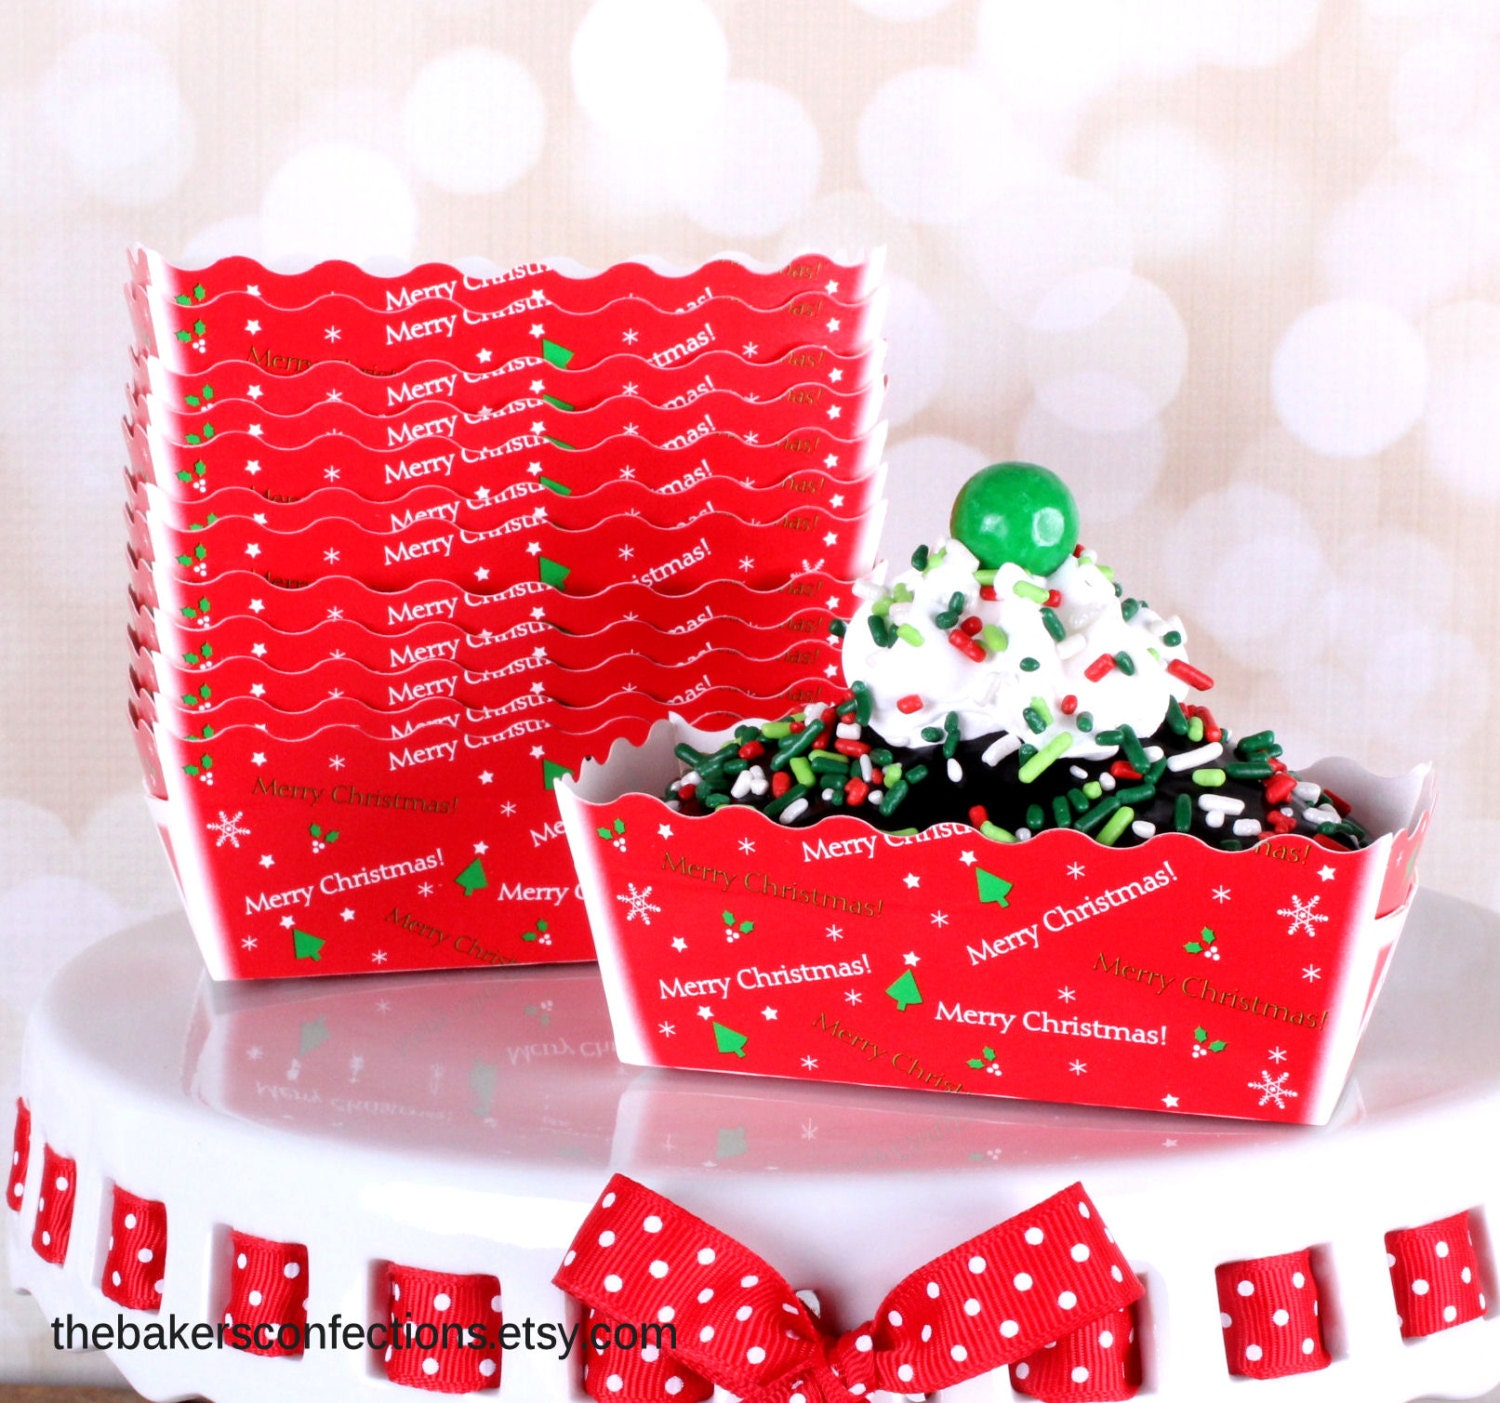 Mini Christmas Loaf Baking Pans In Red With Merry Christmas